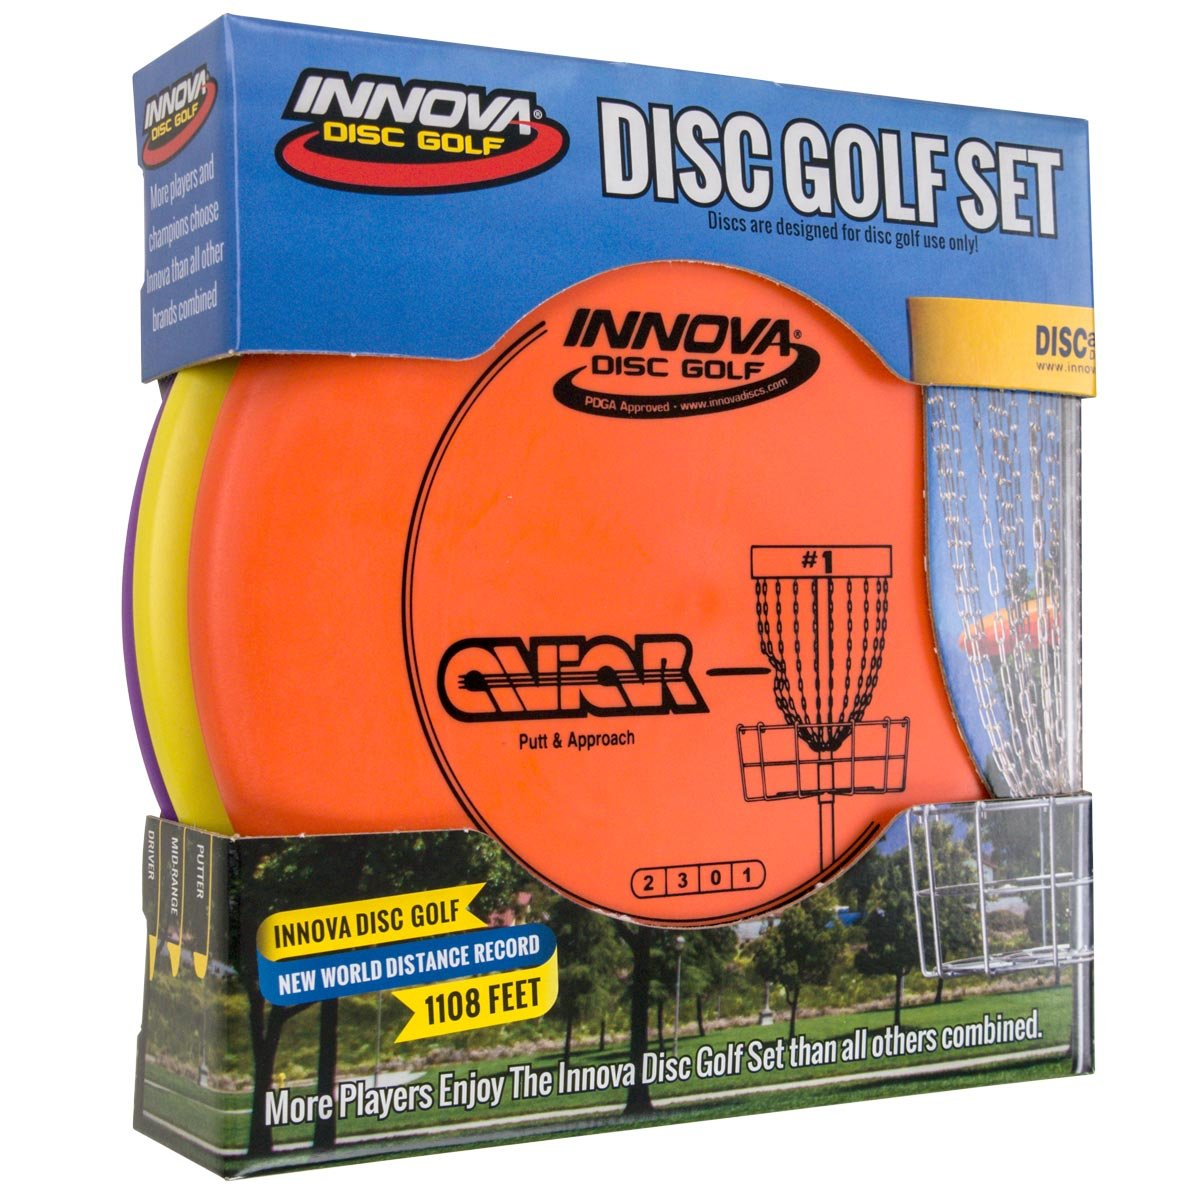 Innova Disc Golf Set - Driver, Mid-Range & Putter, Comfortable DX Plastic, Colors May Vary (3 Pack) by Innova Disc Golf